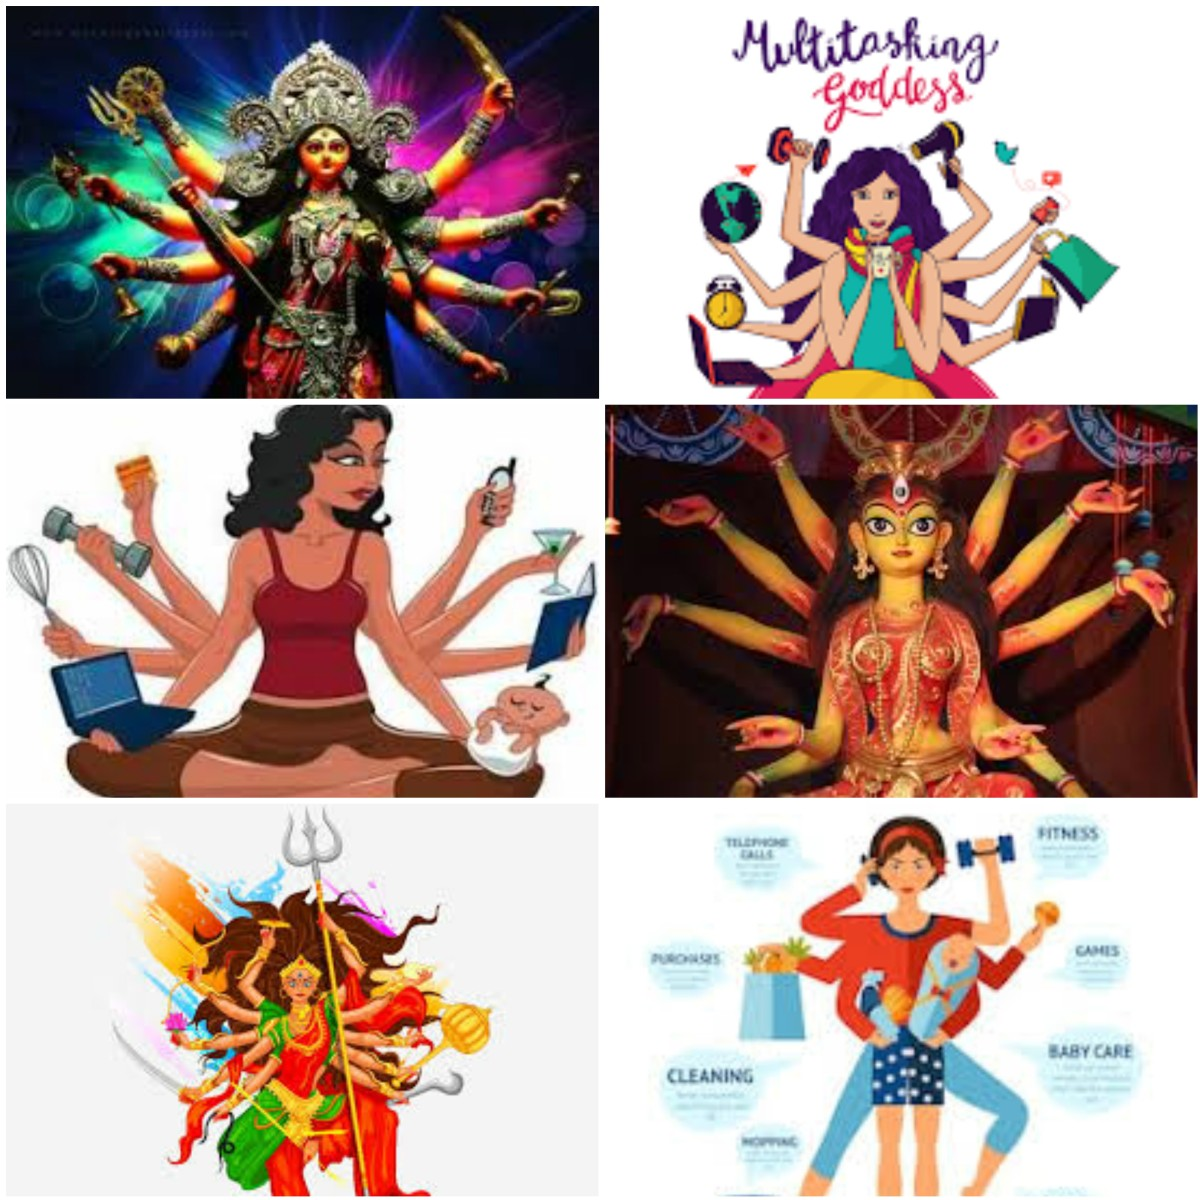 The Multitasking Woman – You call her Durga …. But is that what shewants…?